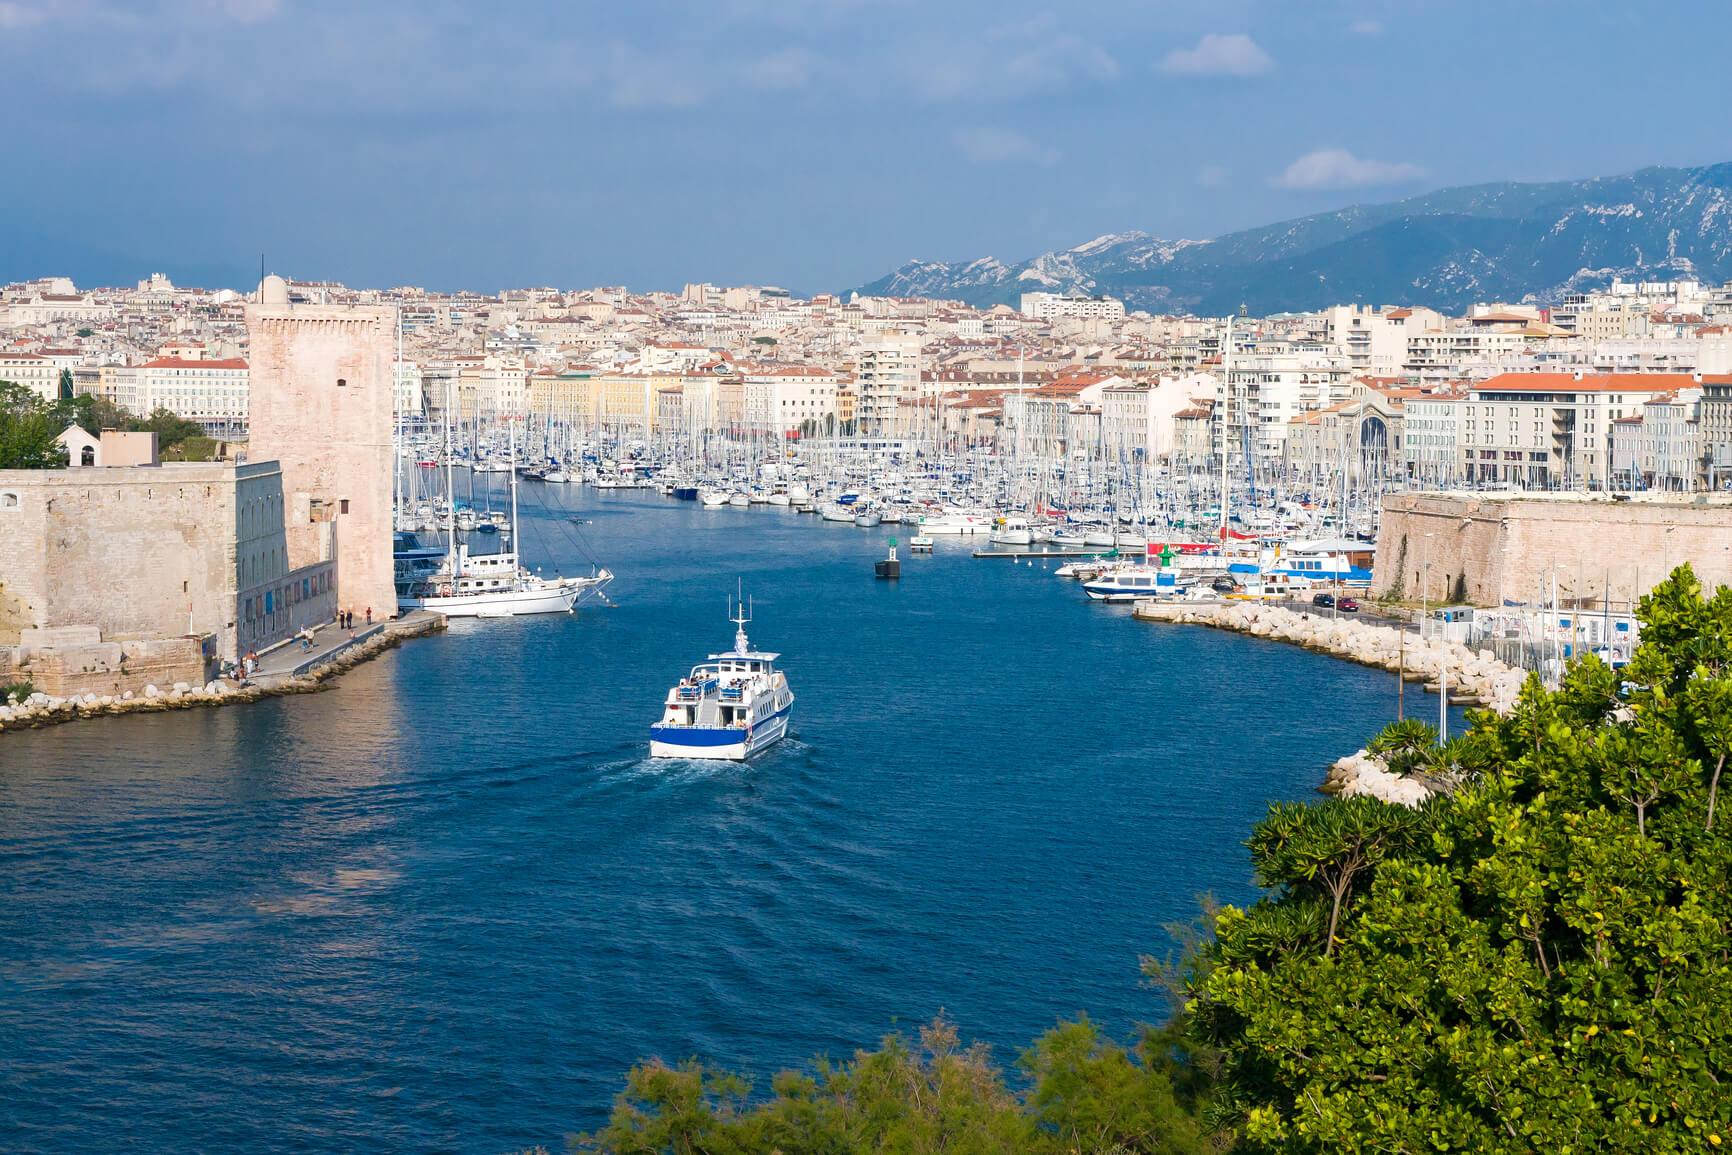 SUMMER: Montreal, Canada to Marseille, France for only $383 CAD roundtrip (Aug-Sep dates)